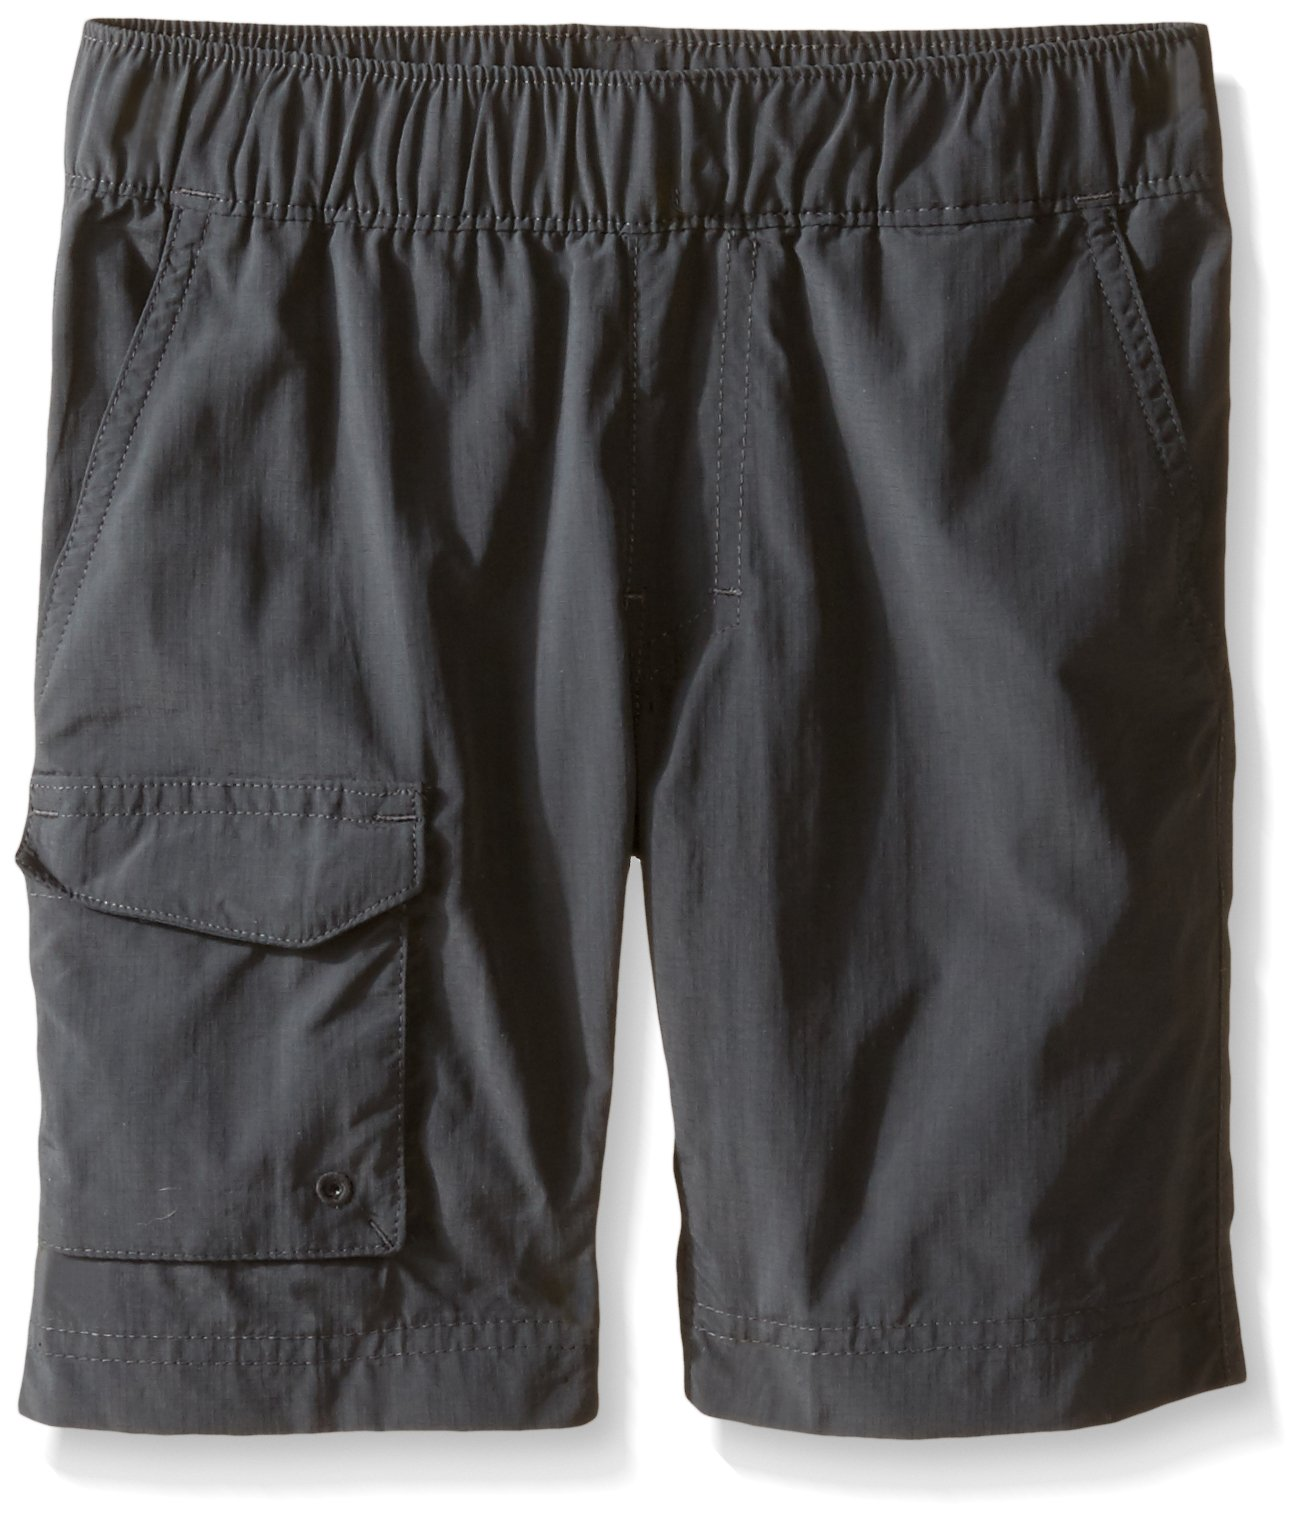 Columbia Youth Boys' Silver Ridge Pull-On Short, Breathable, UPF 30 Sun Protection